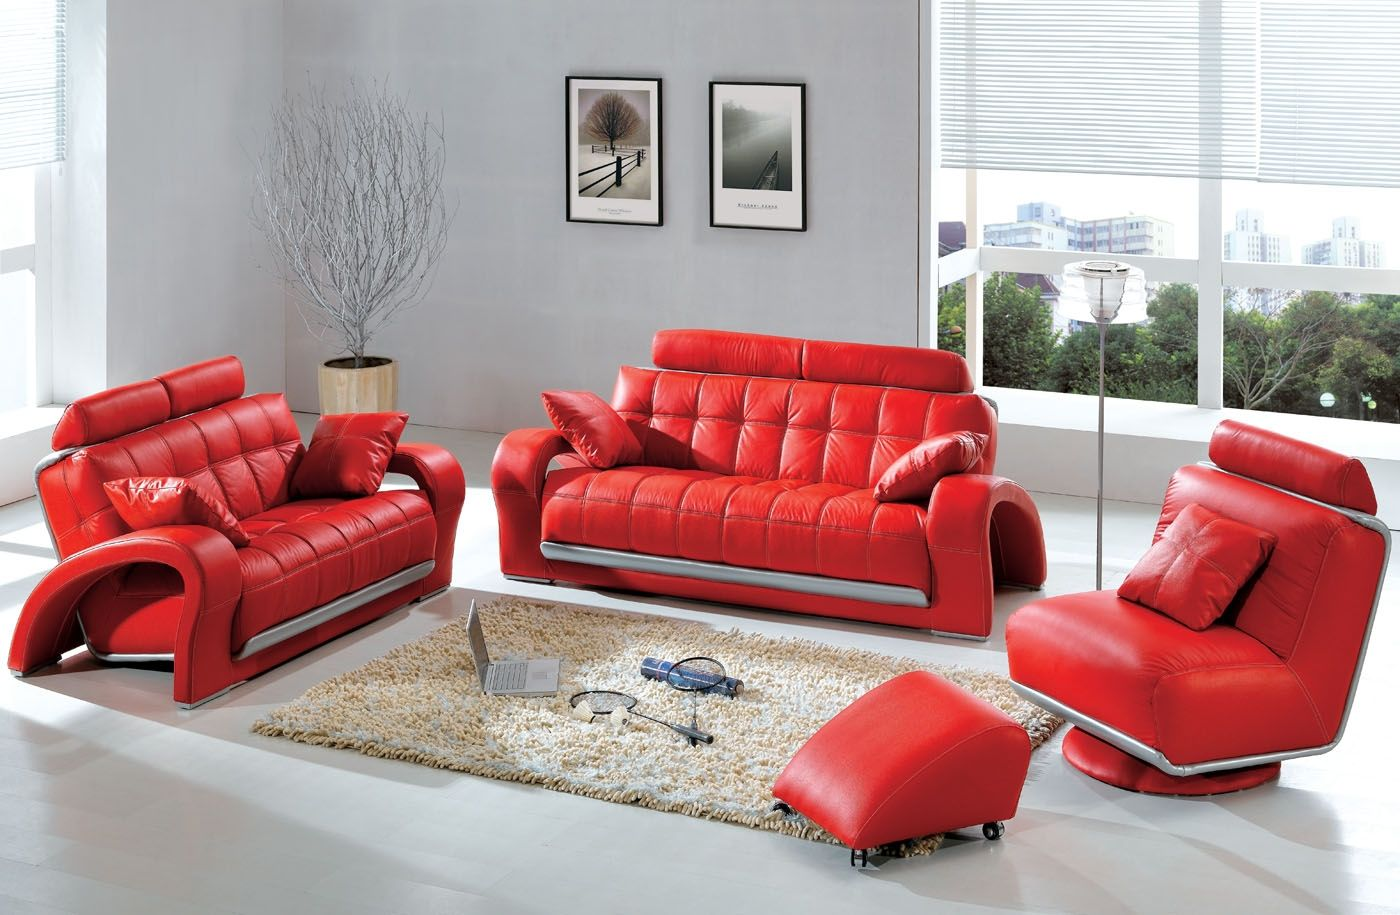 Elegant Living Room Design With Red Sofa Furniture Sets